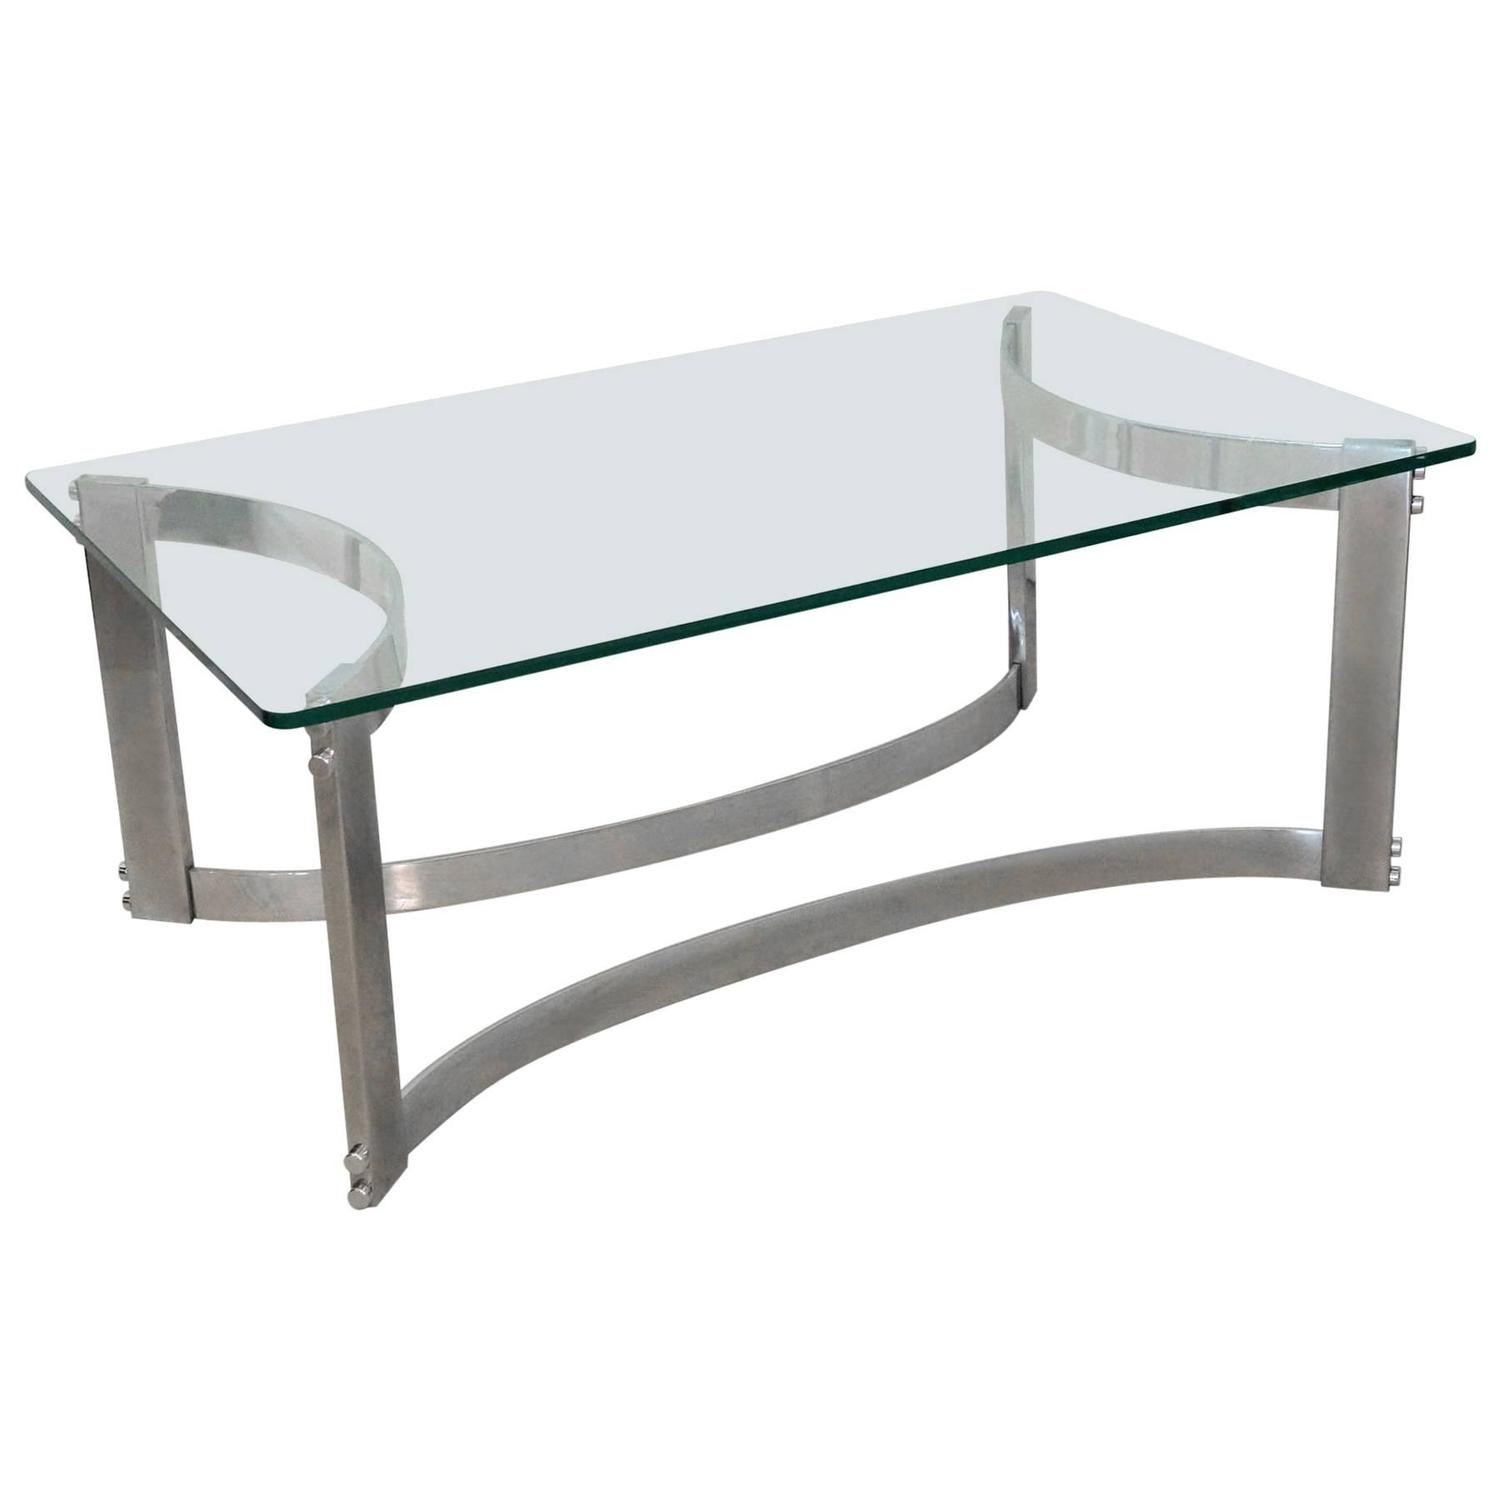 Rectangular coffee table with glass top and curved chrome base for sale at 1stdibs Glass coffee table base